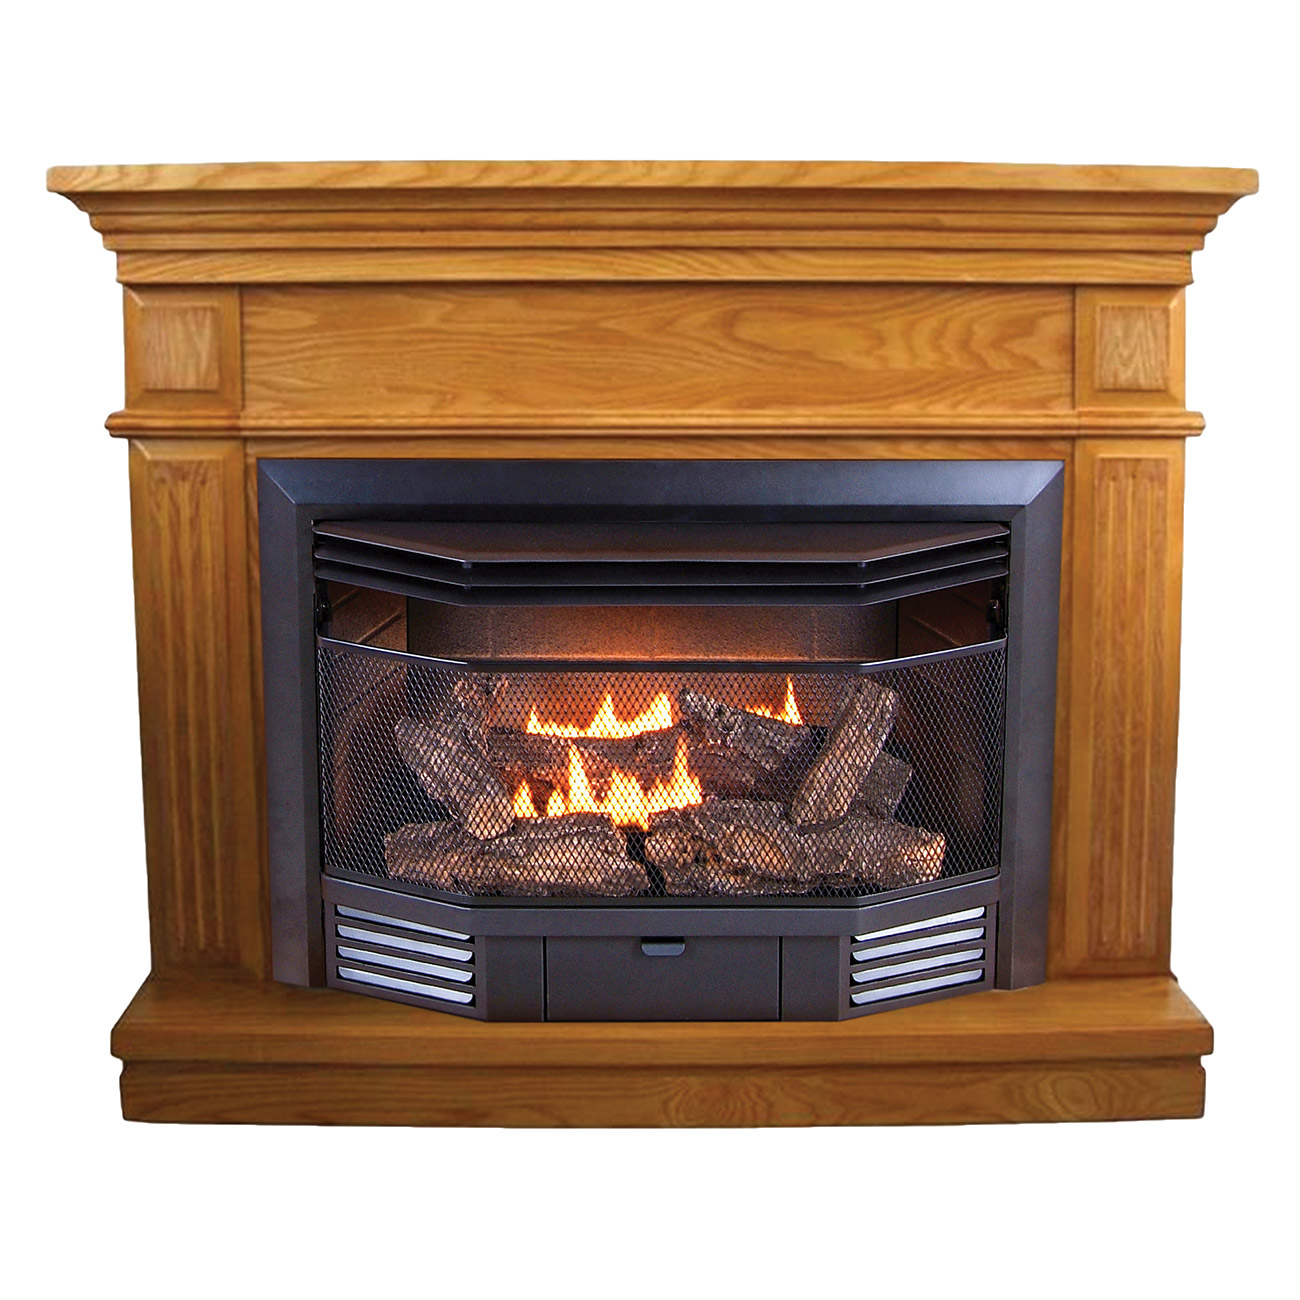 Ventless Fireplace For Model Bd23tcc 2 Lo Procom Heating